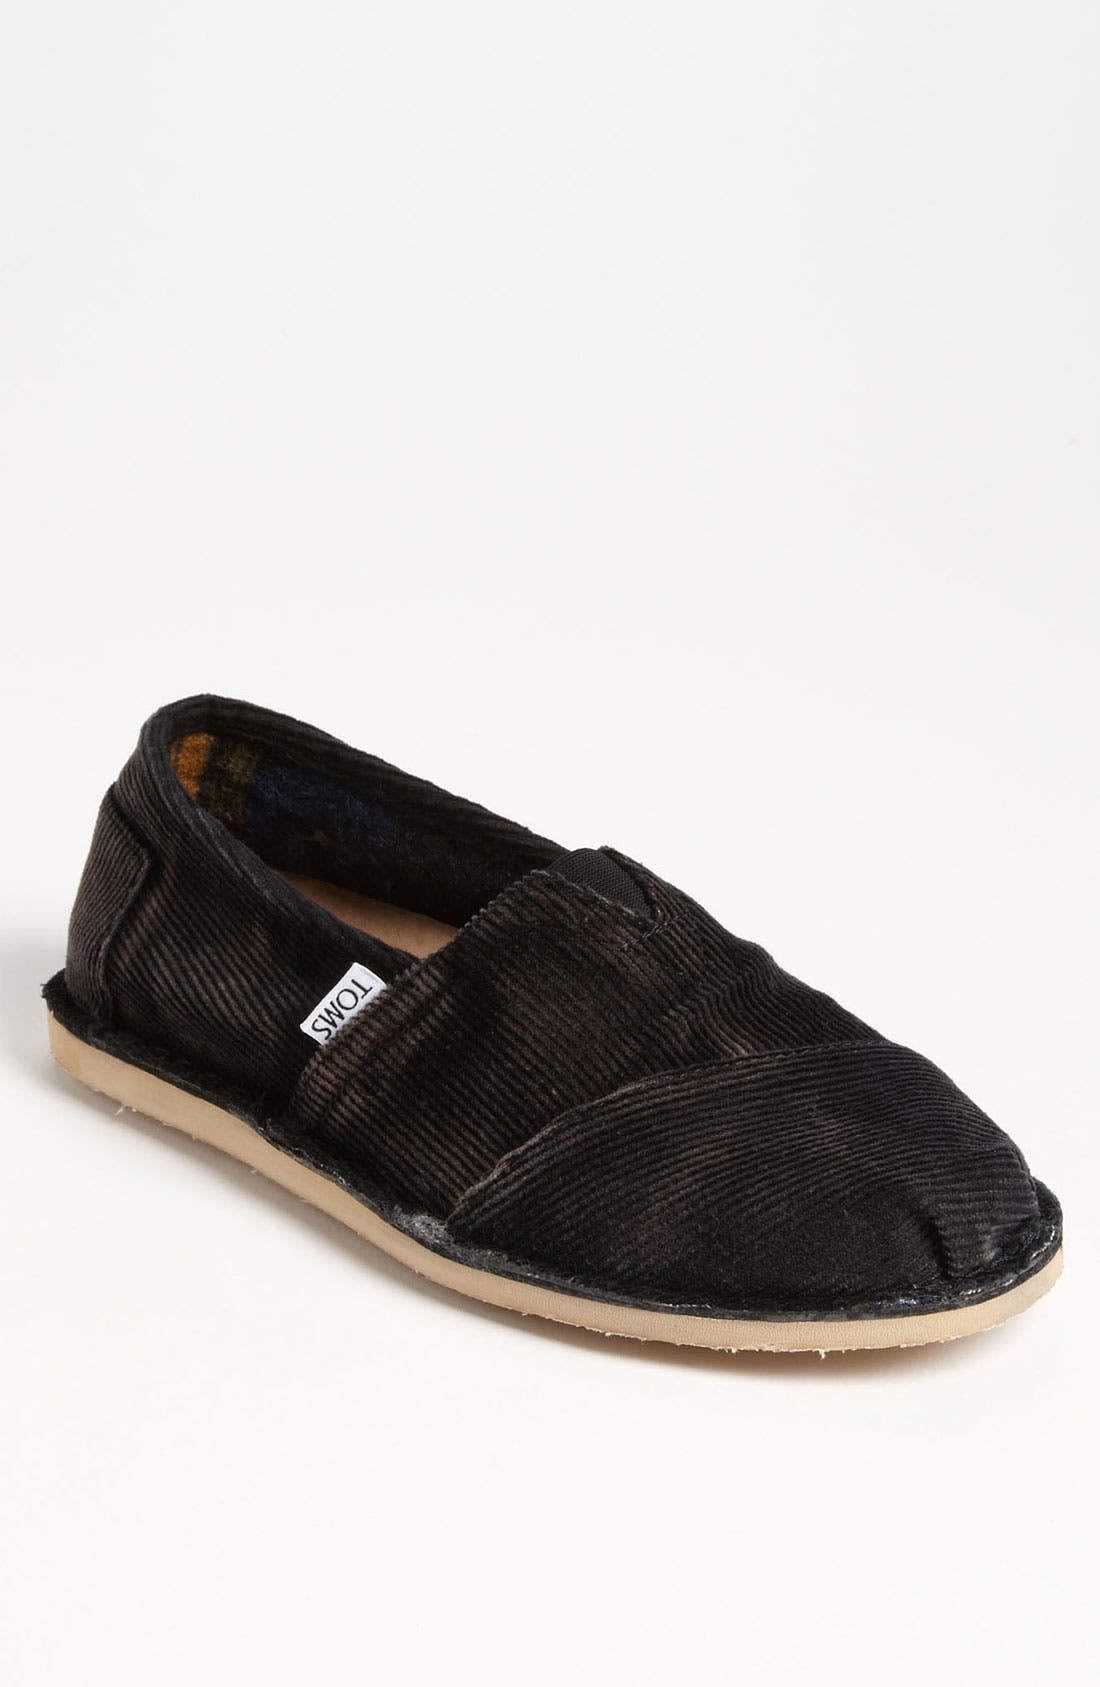 Alternate Image 1 Selected - TOMS 'Stitchout' Stonewash Corduroy Slip-On (Men)